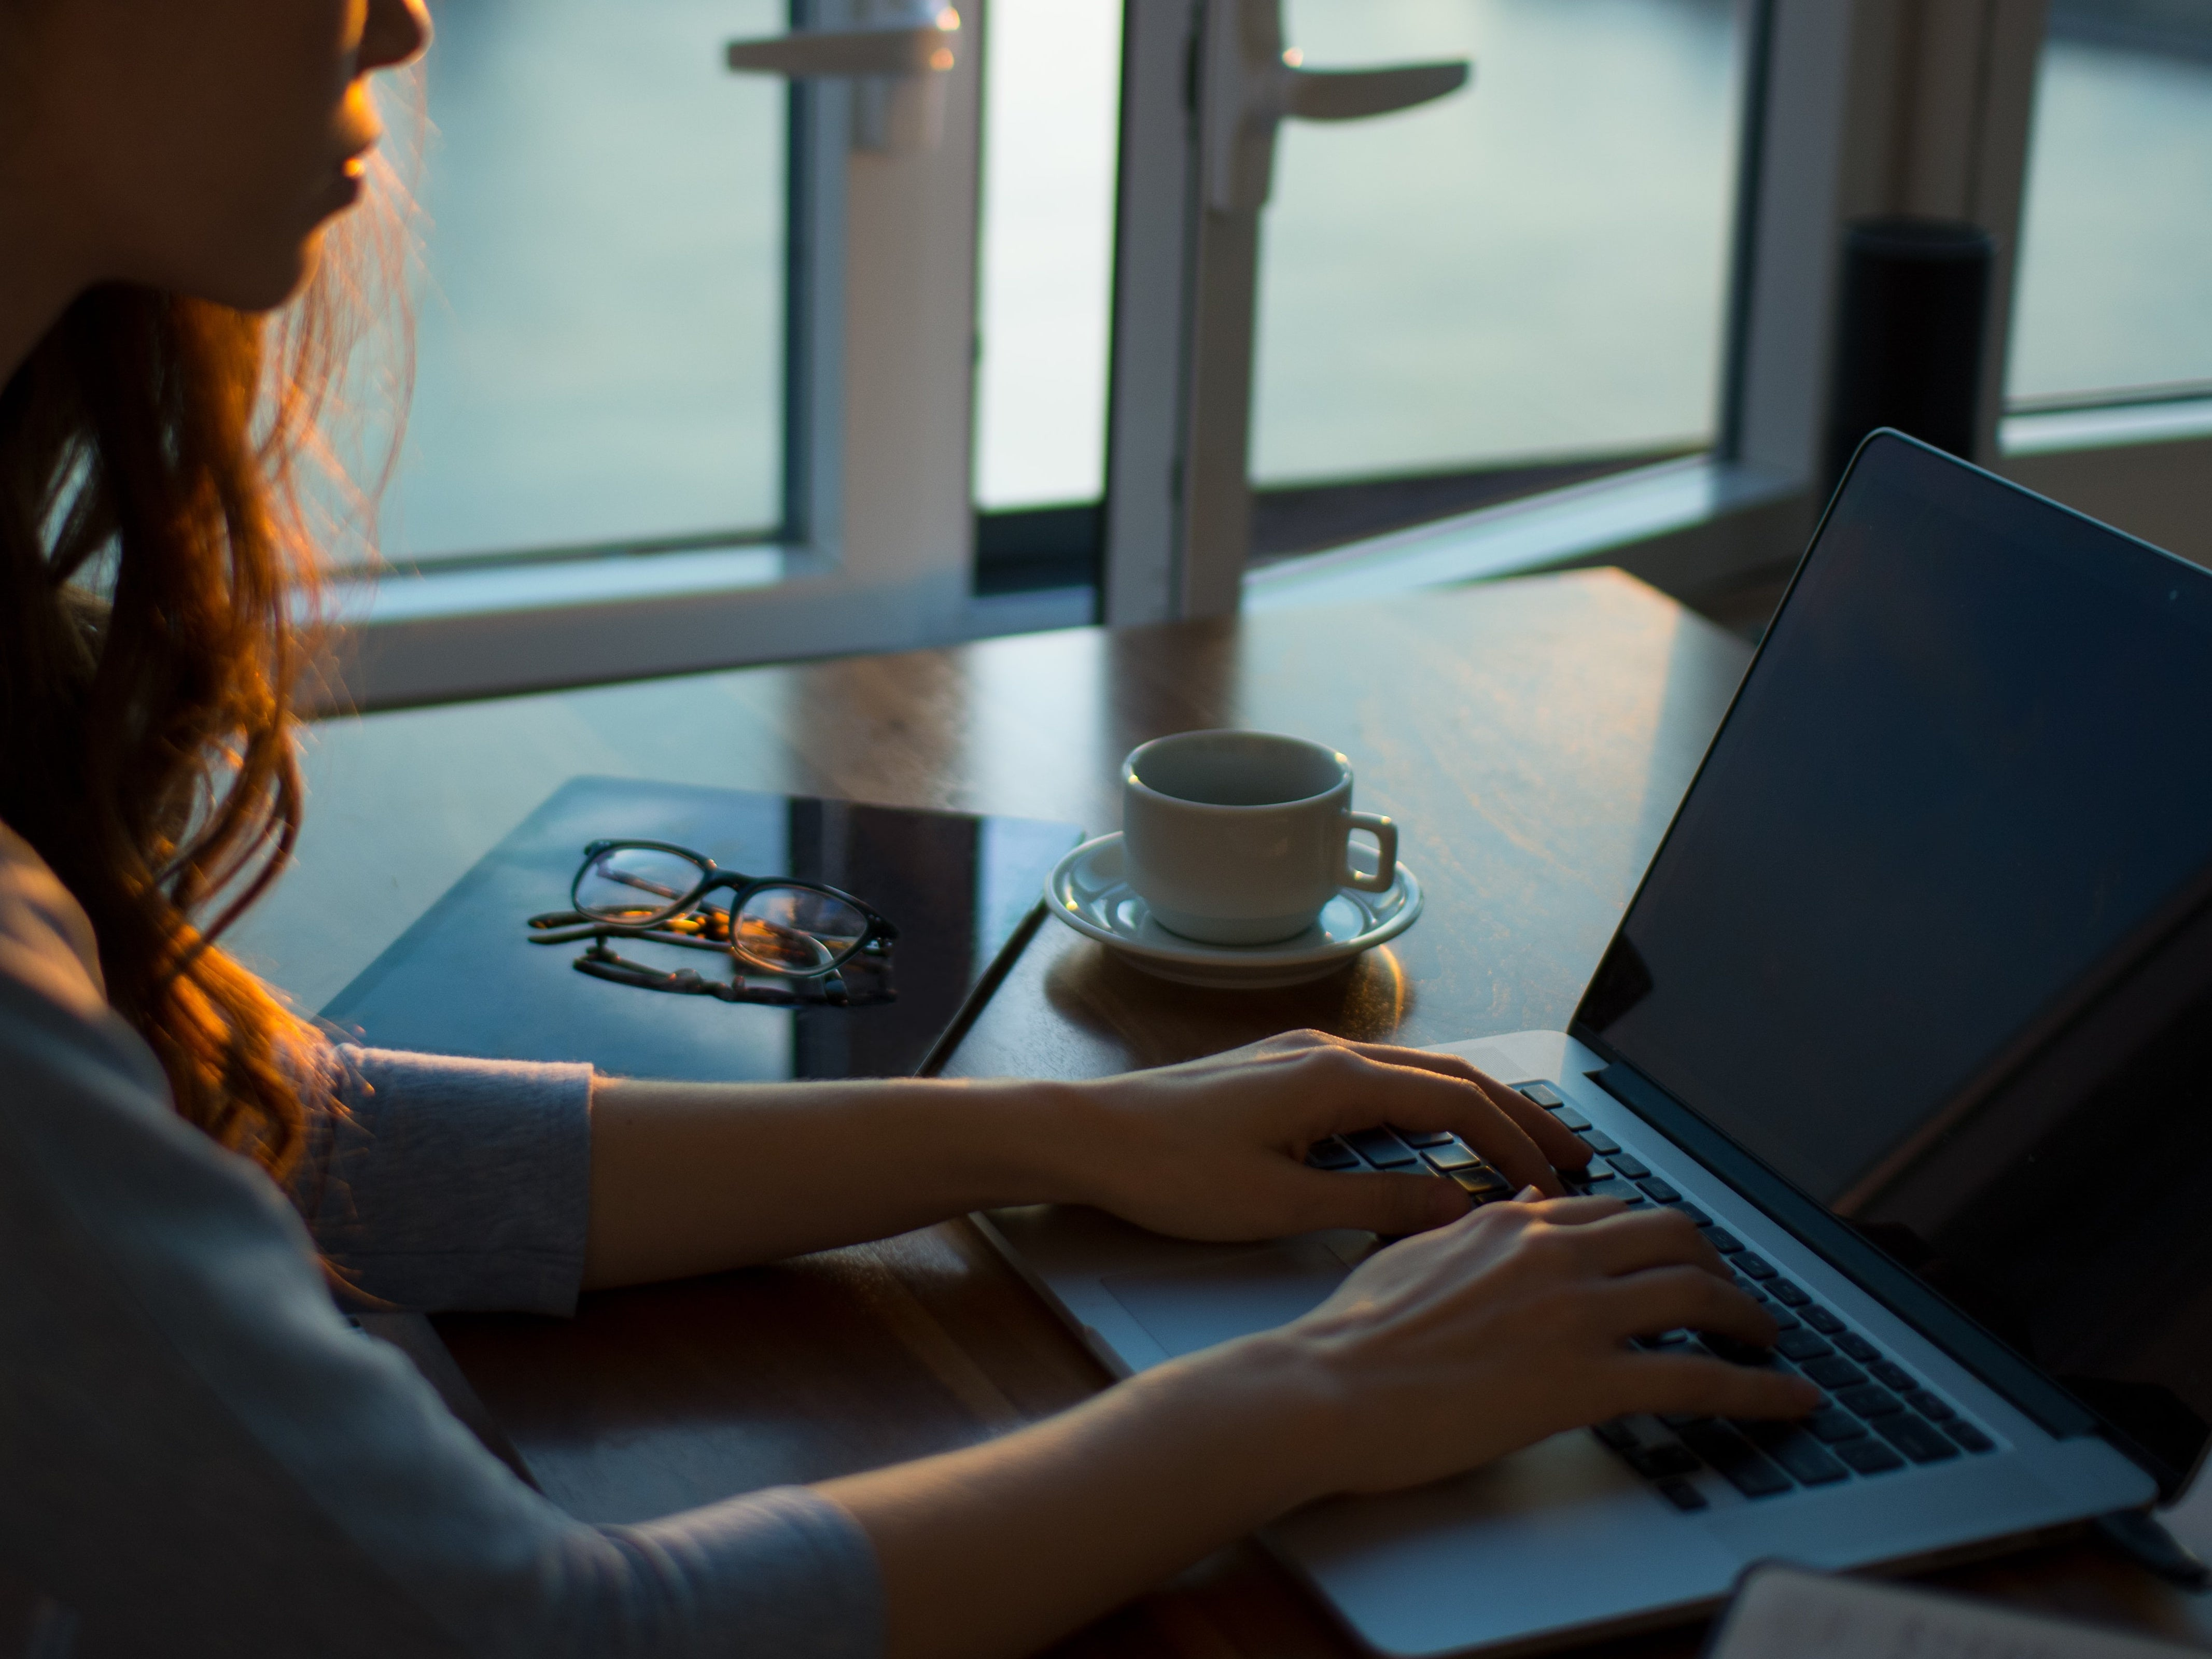 Working from home safely during a pandemic